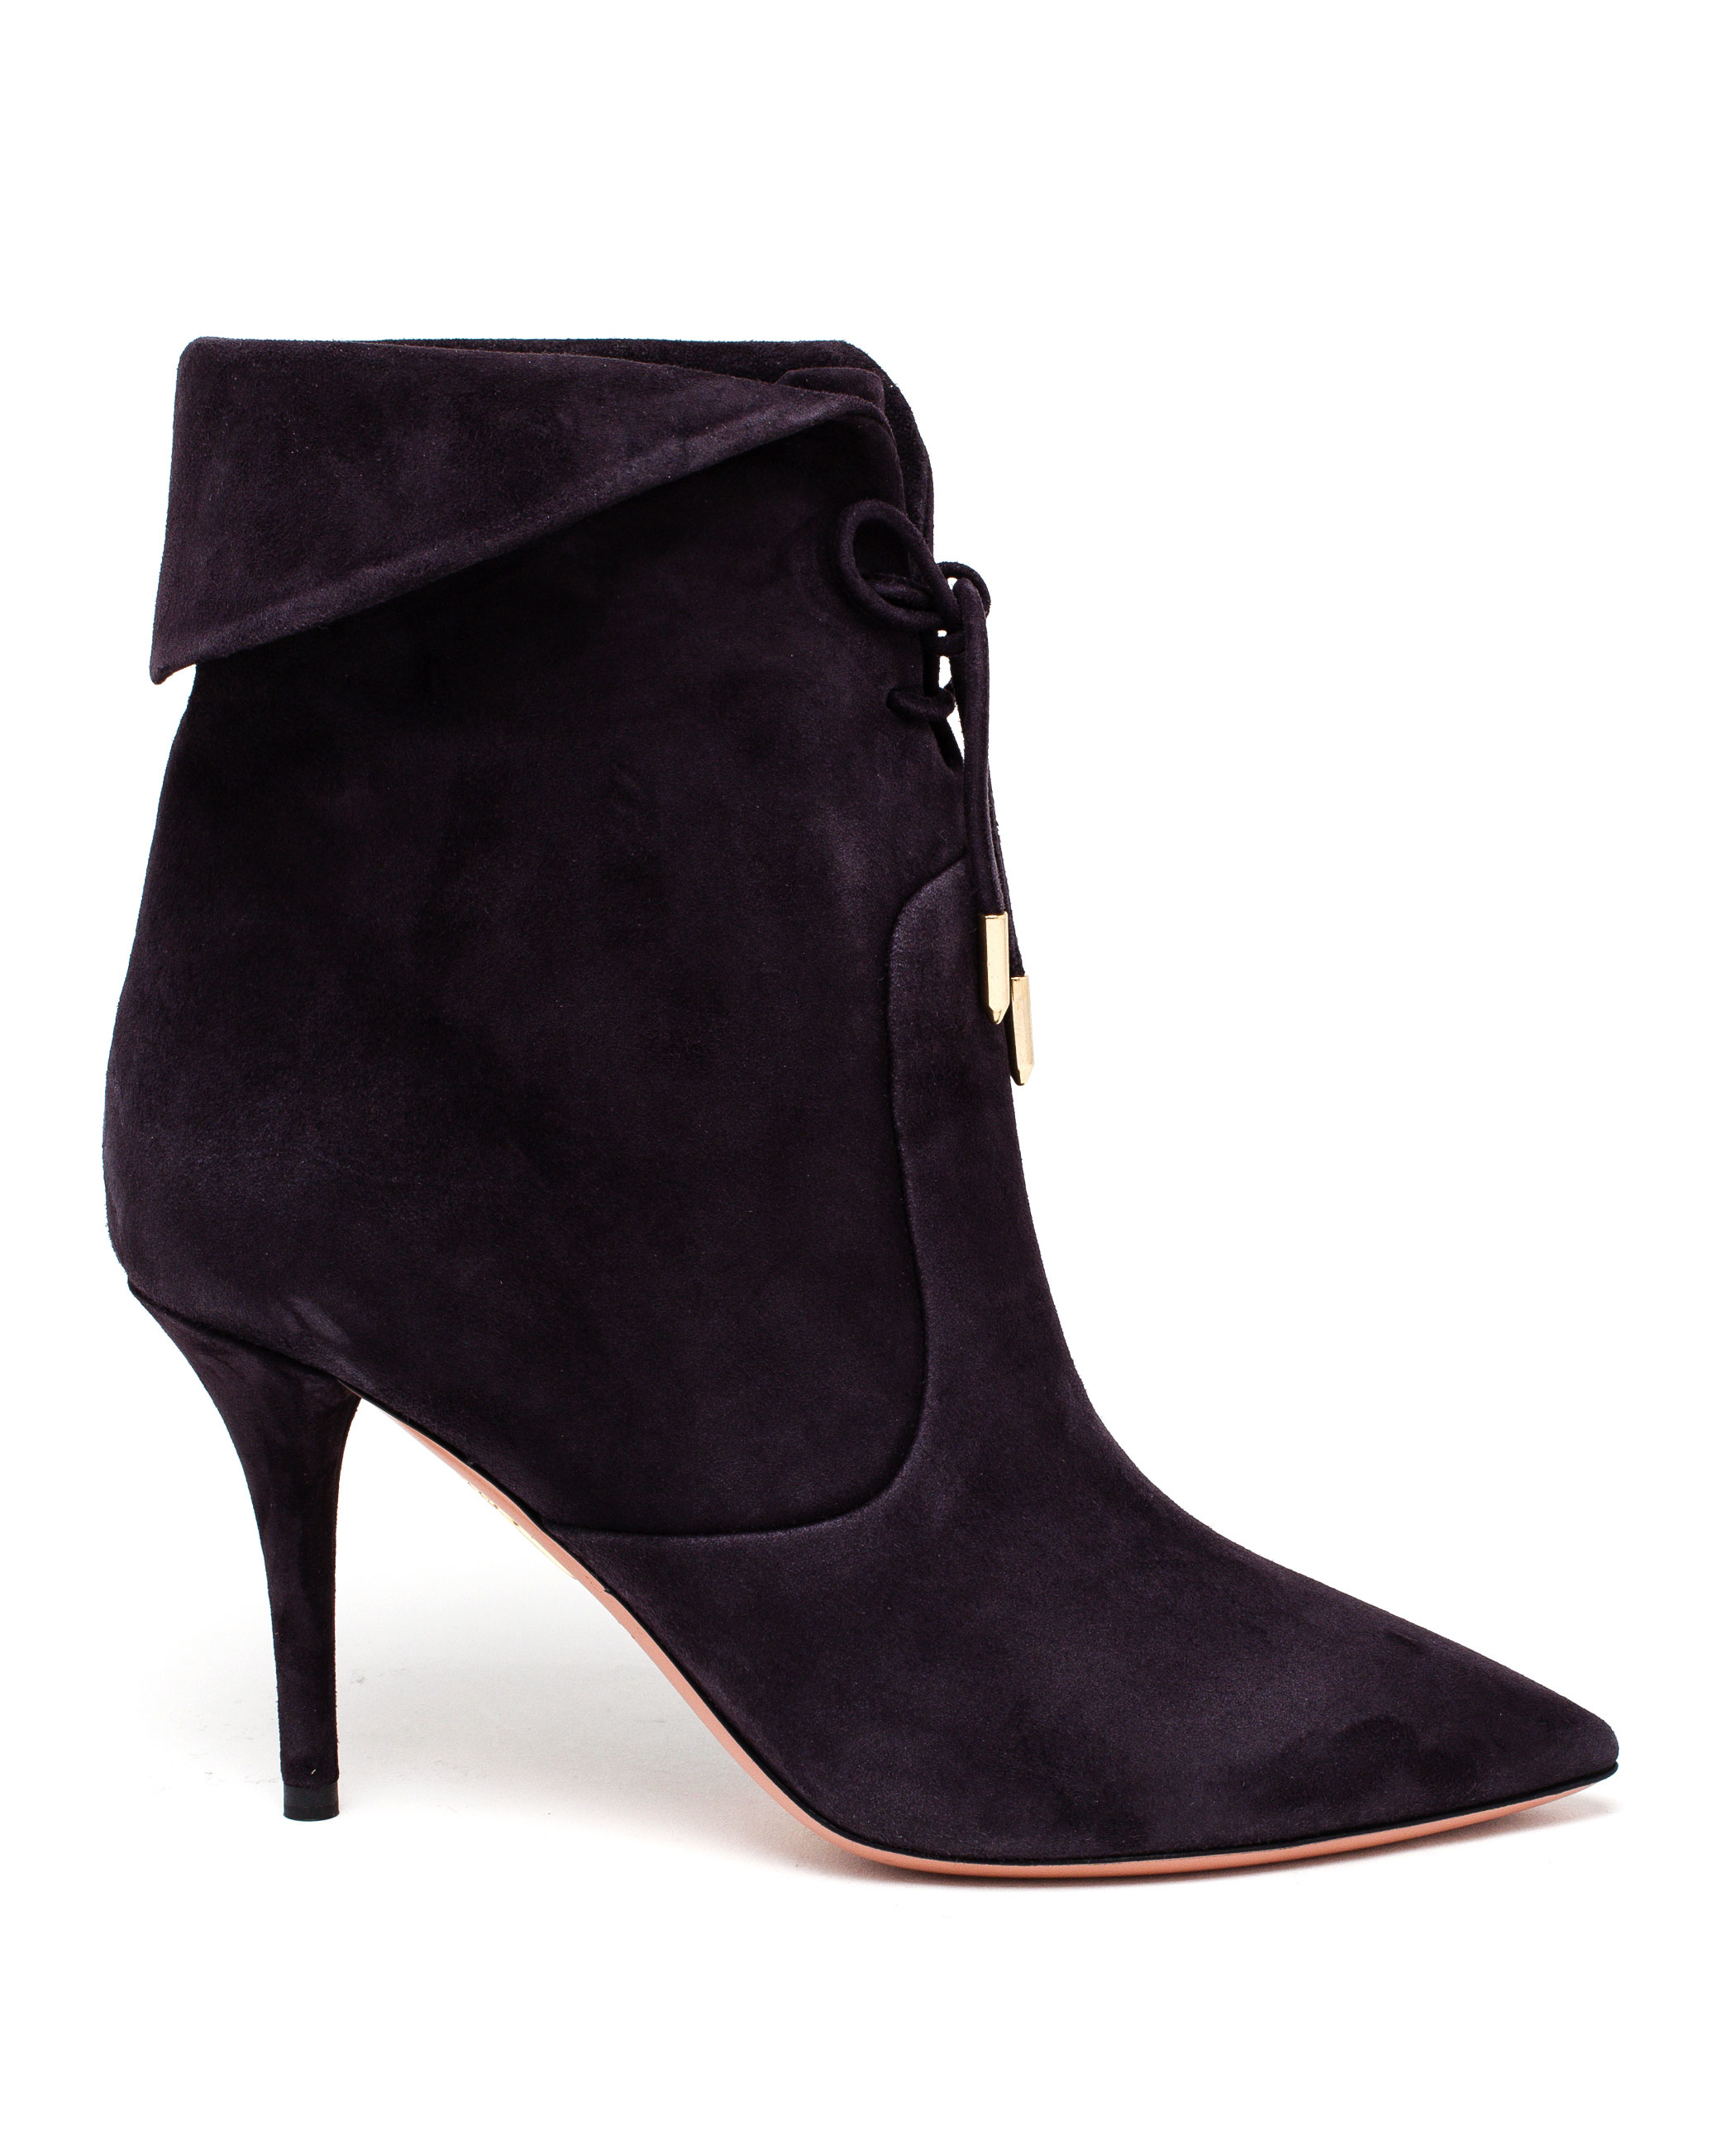 lyst aquazzura tribeca ankle boots in gray. Black Bedroom Furniture Sets. Home Design Ideas